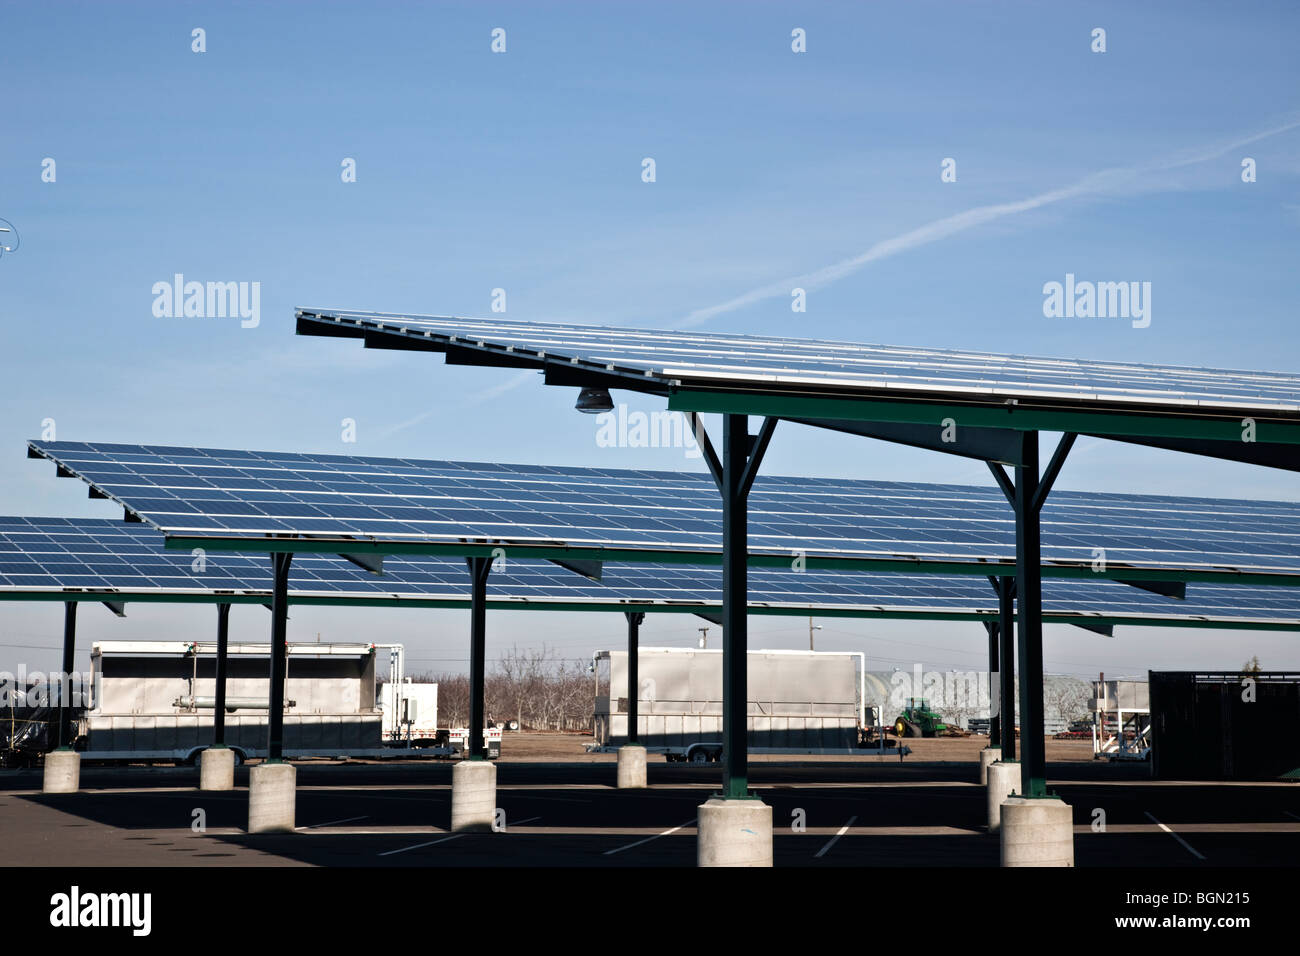 Solar panels, installed on roofs, agricultural vehicle parking. - Stock Image